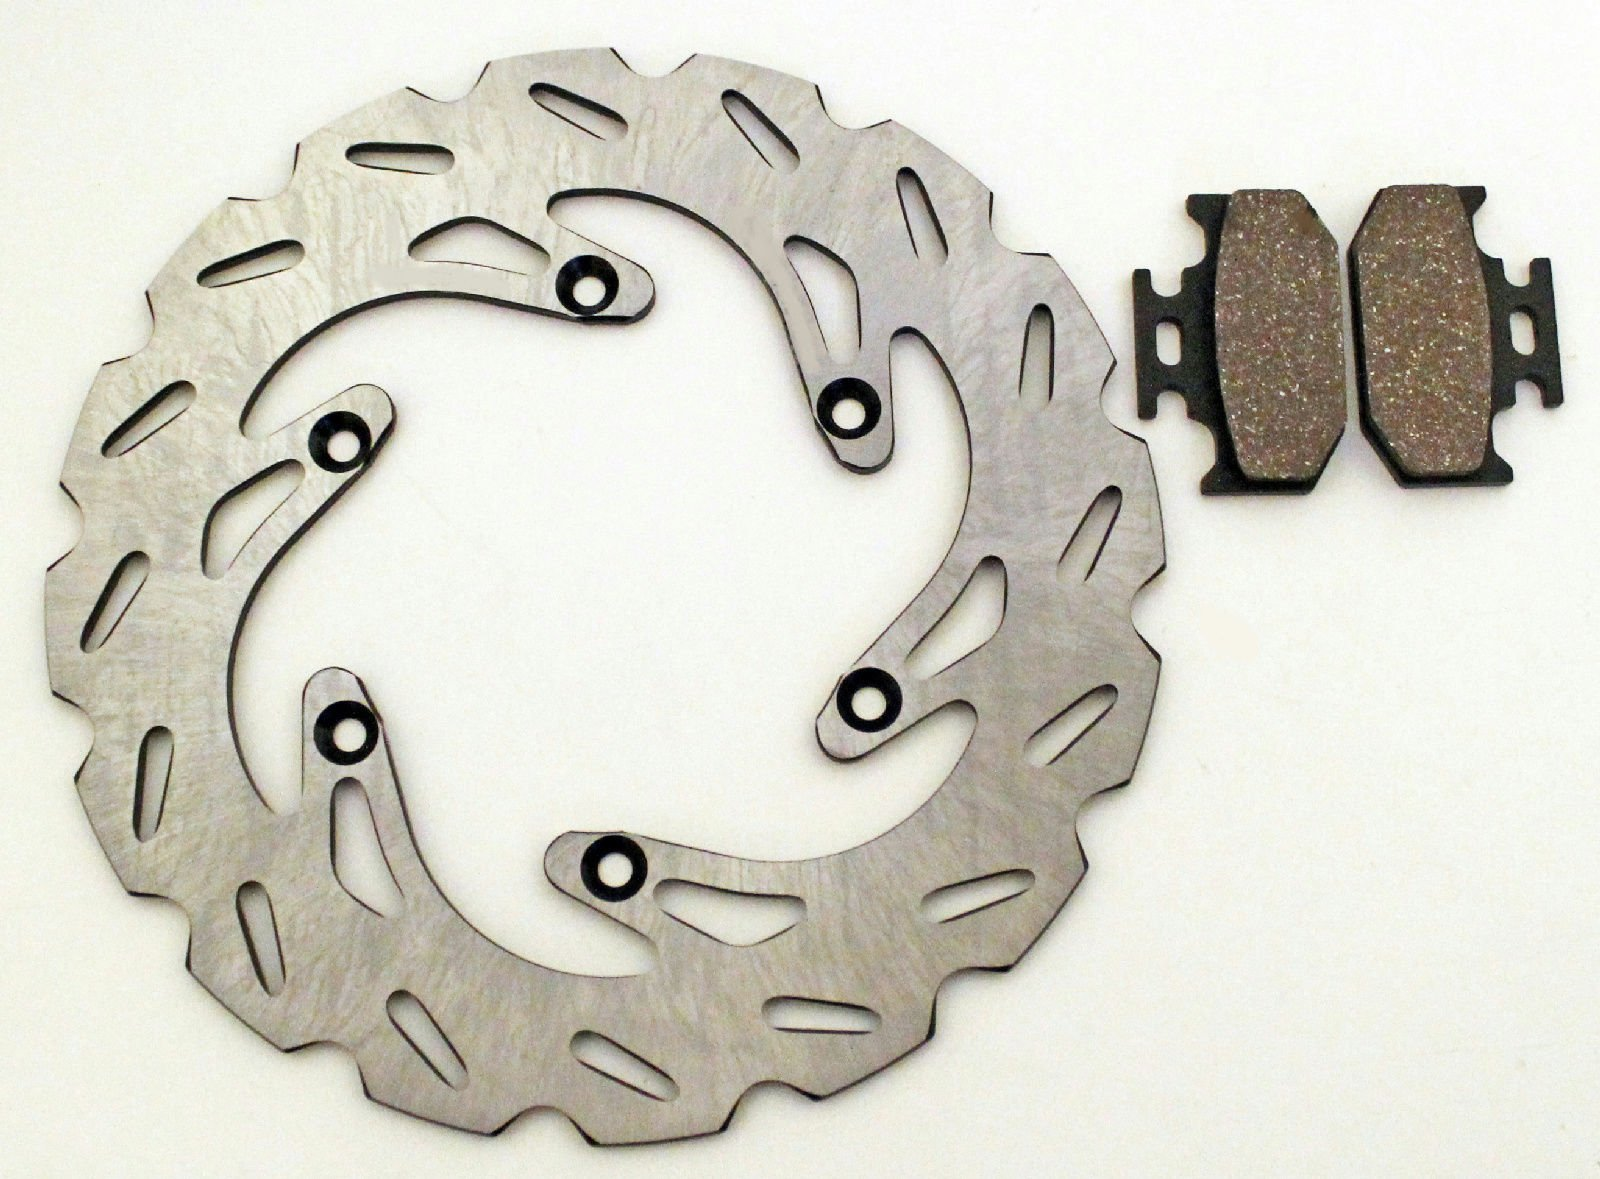 1990-1995 Kawasaki KX500 Rear Brake Pads And Sport Brake Rotor